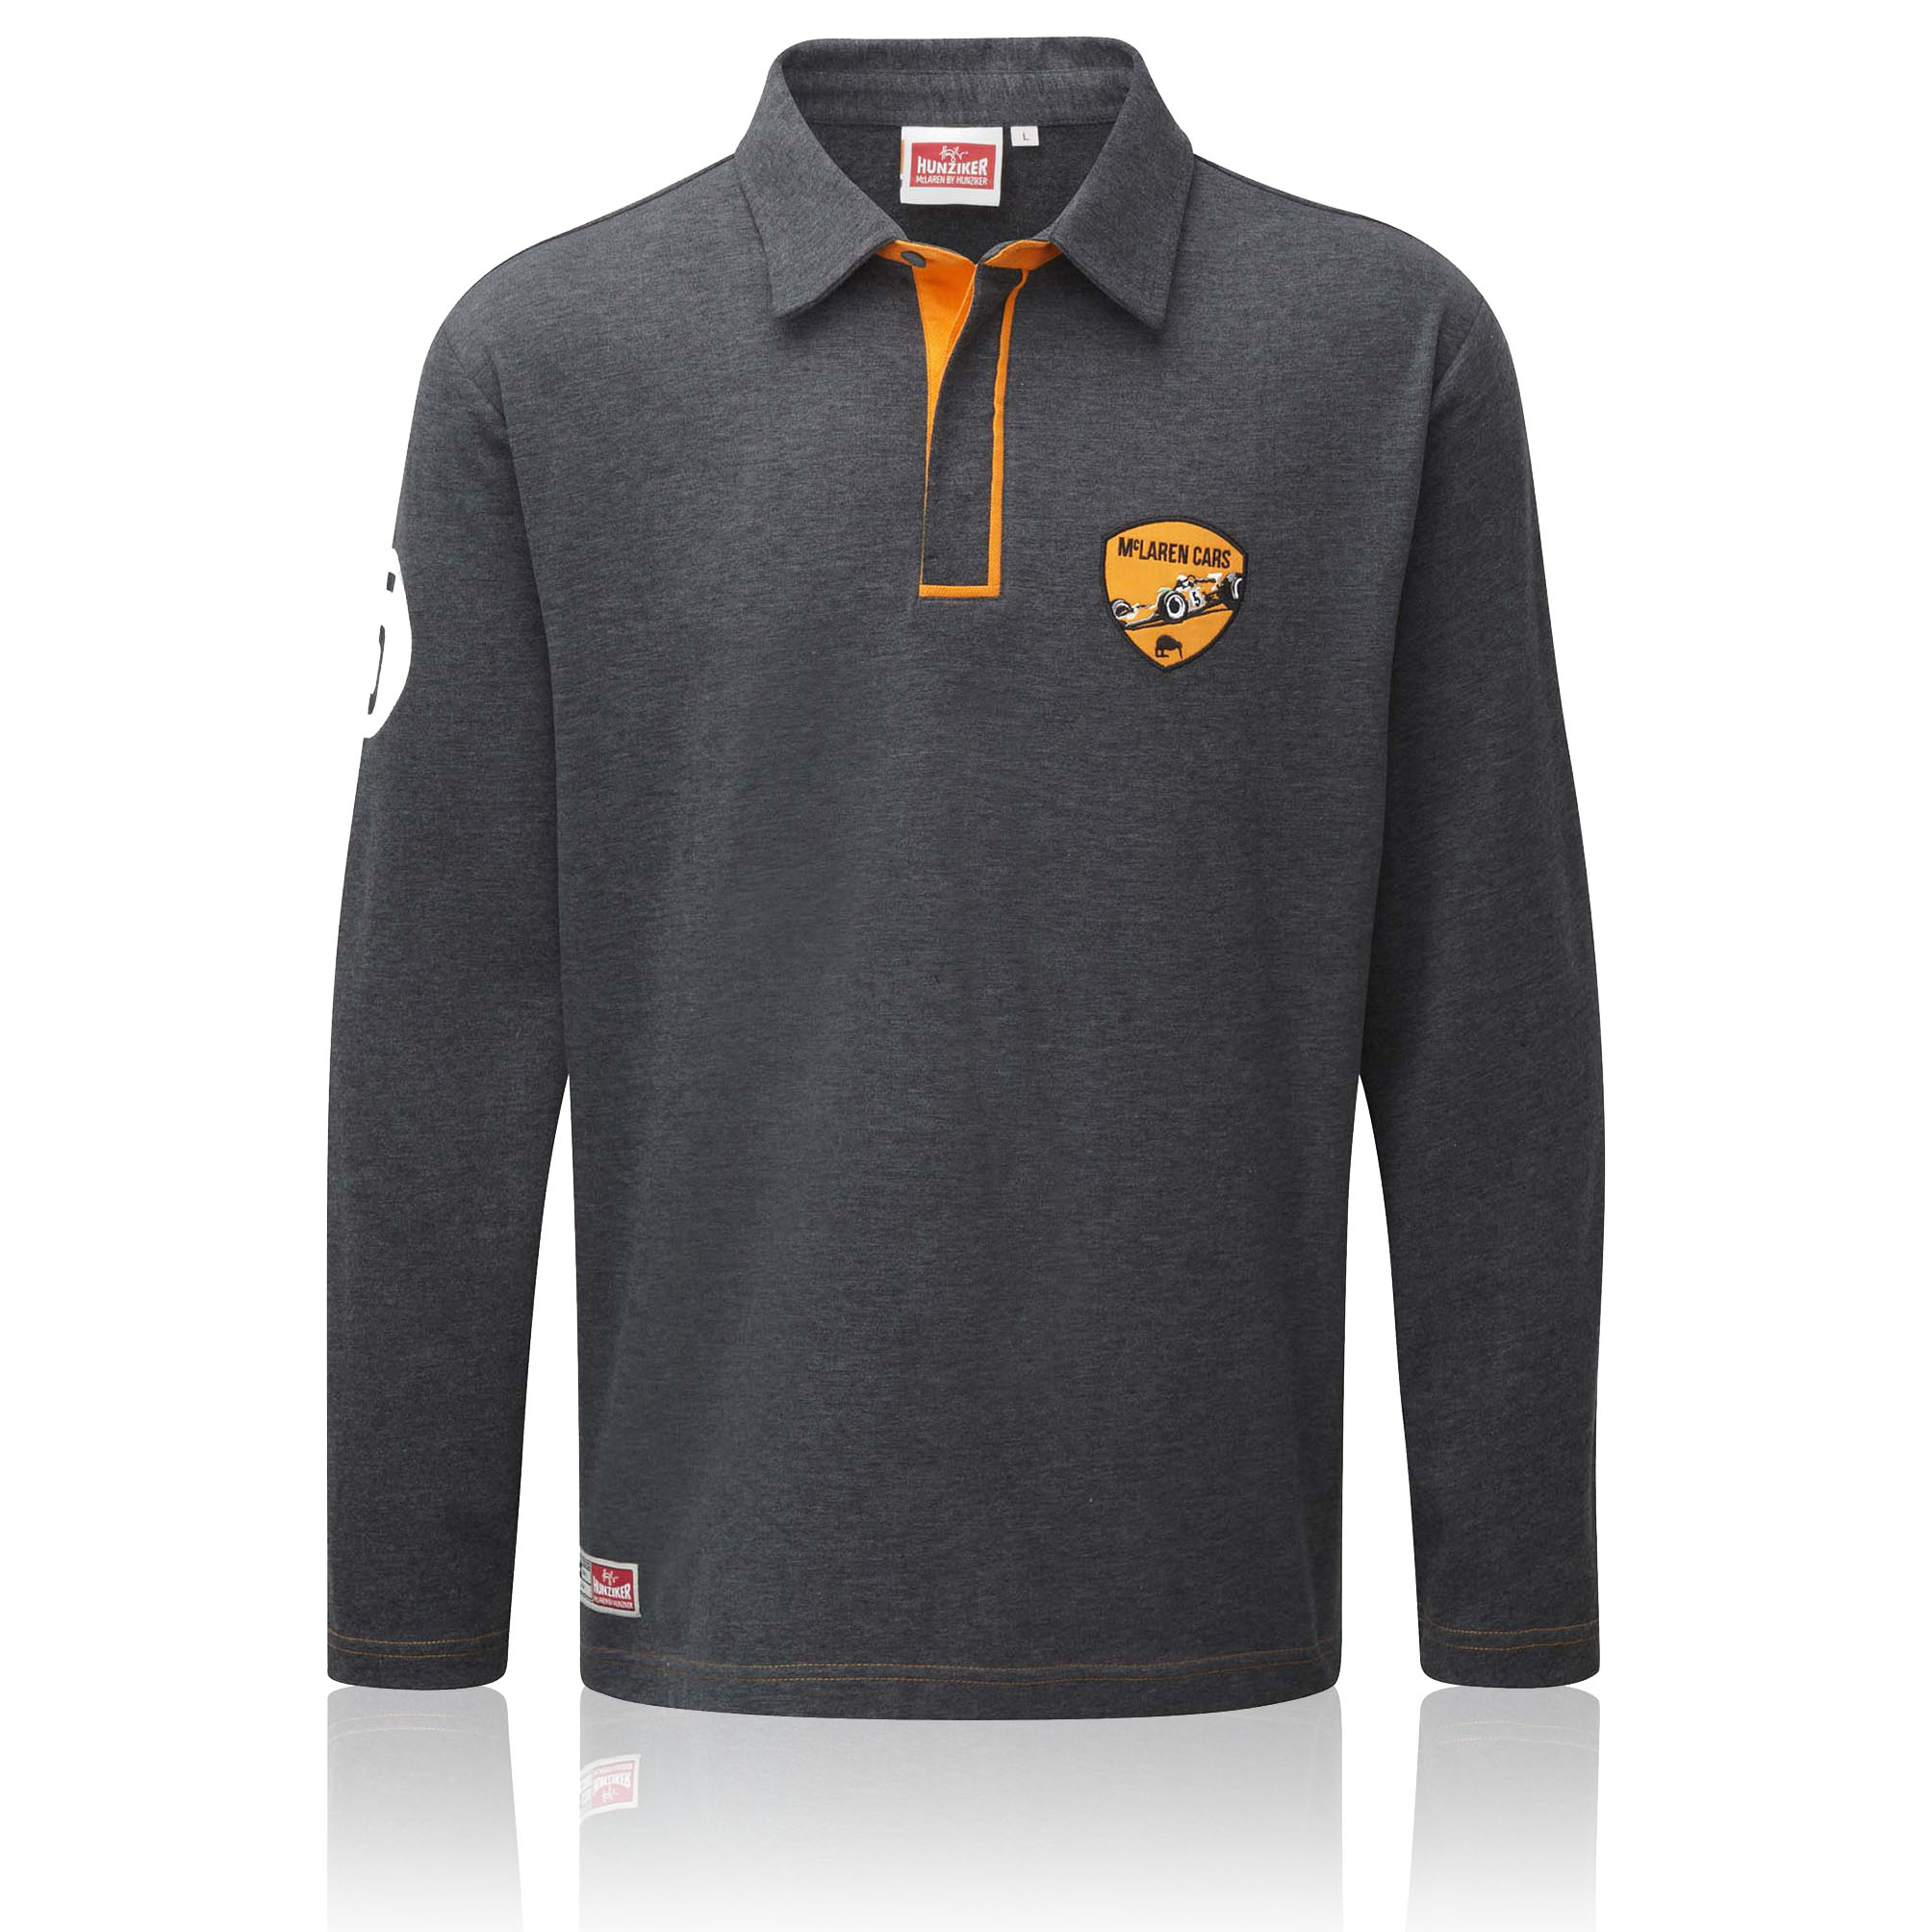 McLaren by Hunziker M7A 1968 Long Sleeve Rugby Polo Shirt Grey